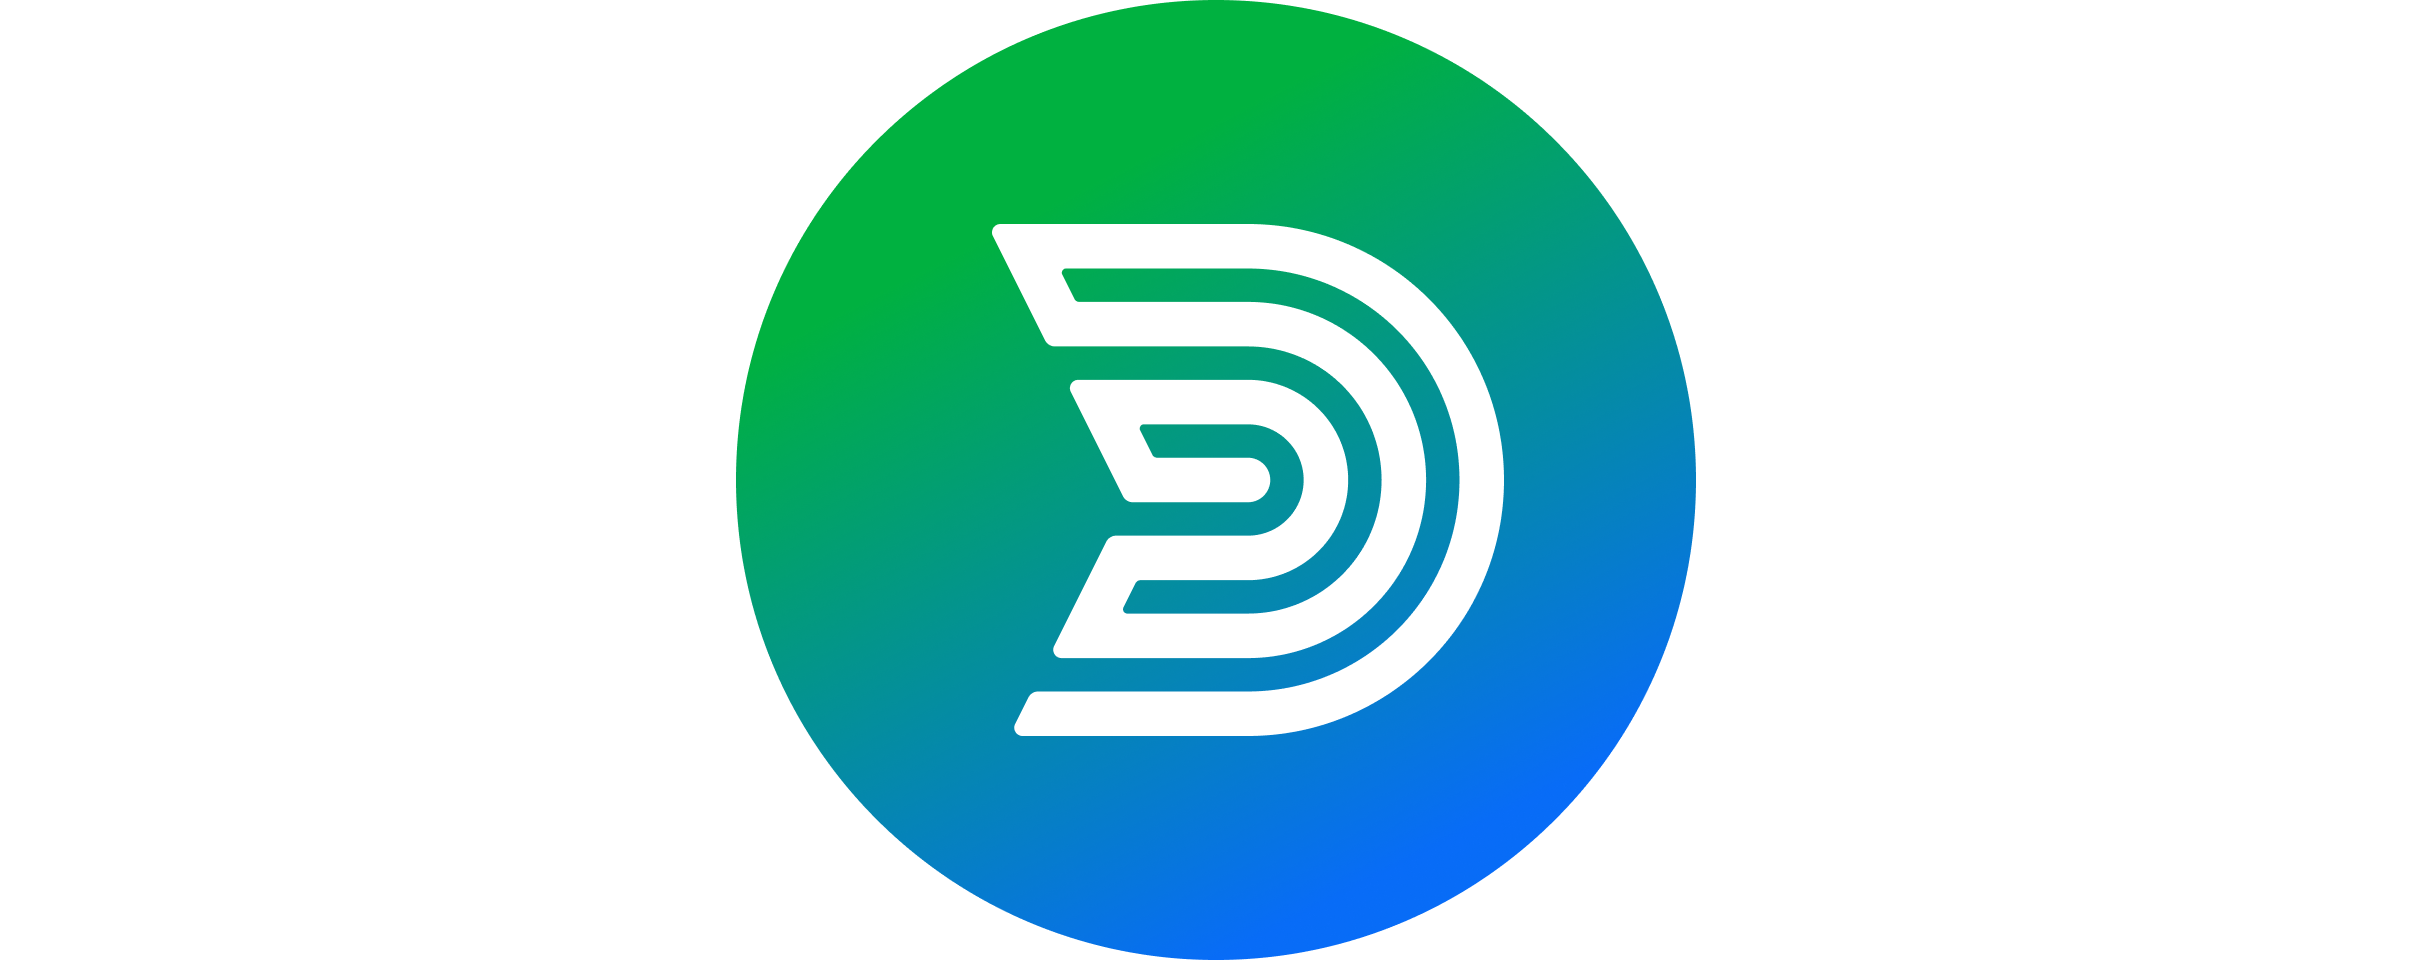 Domainr social media icon